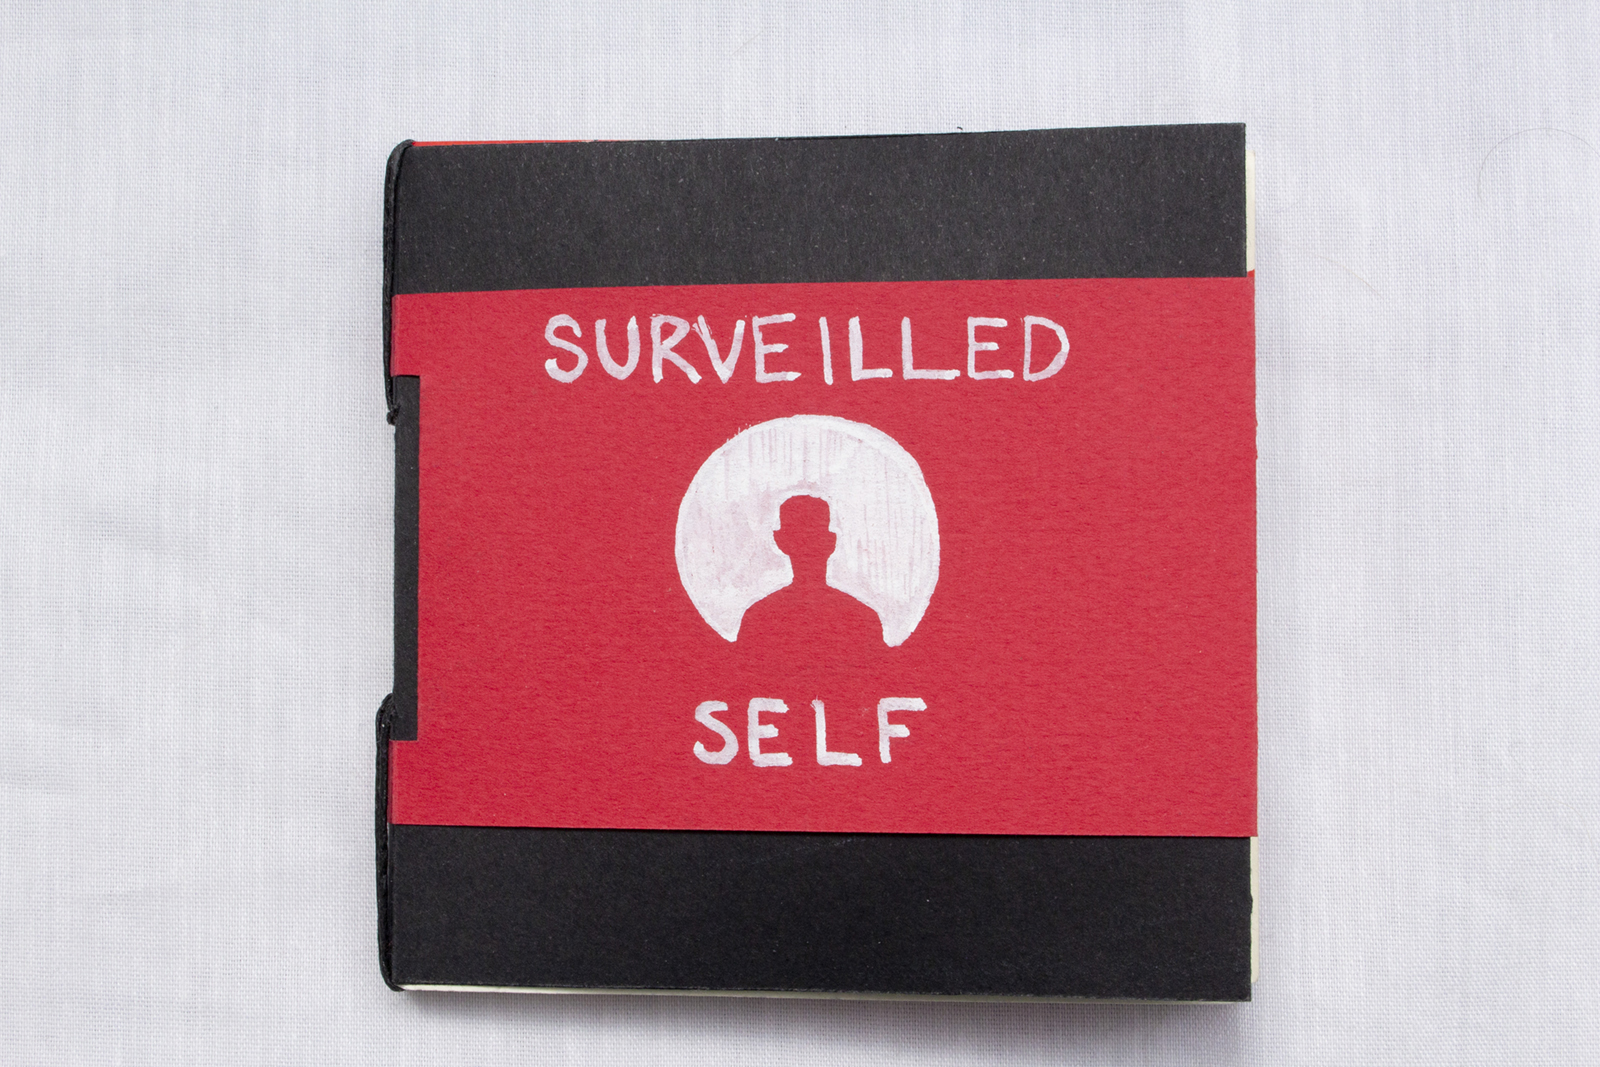 Front cover of Surveilled Self. Black paper cover with a red sleeve. A white circle with a person's silhouette is drawn.